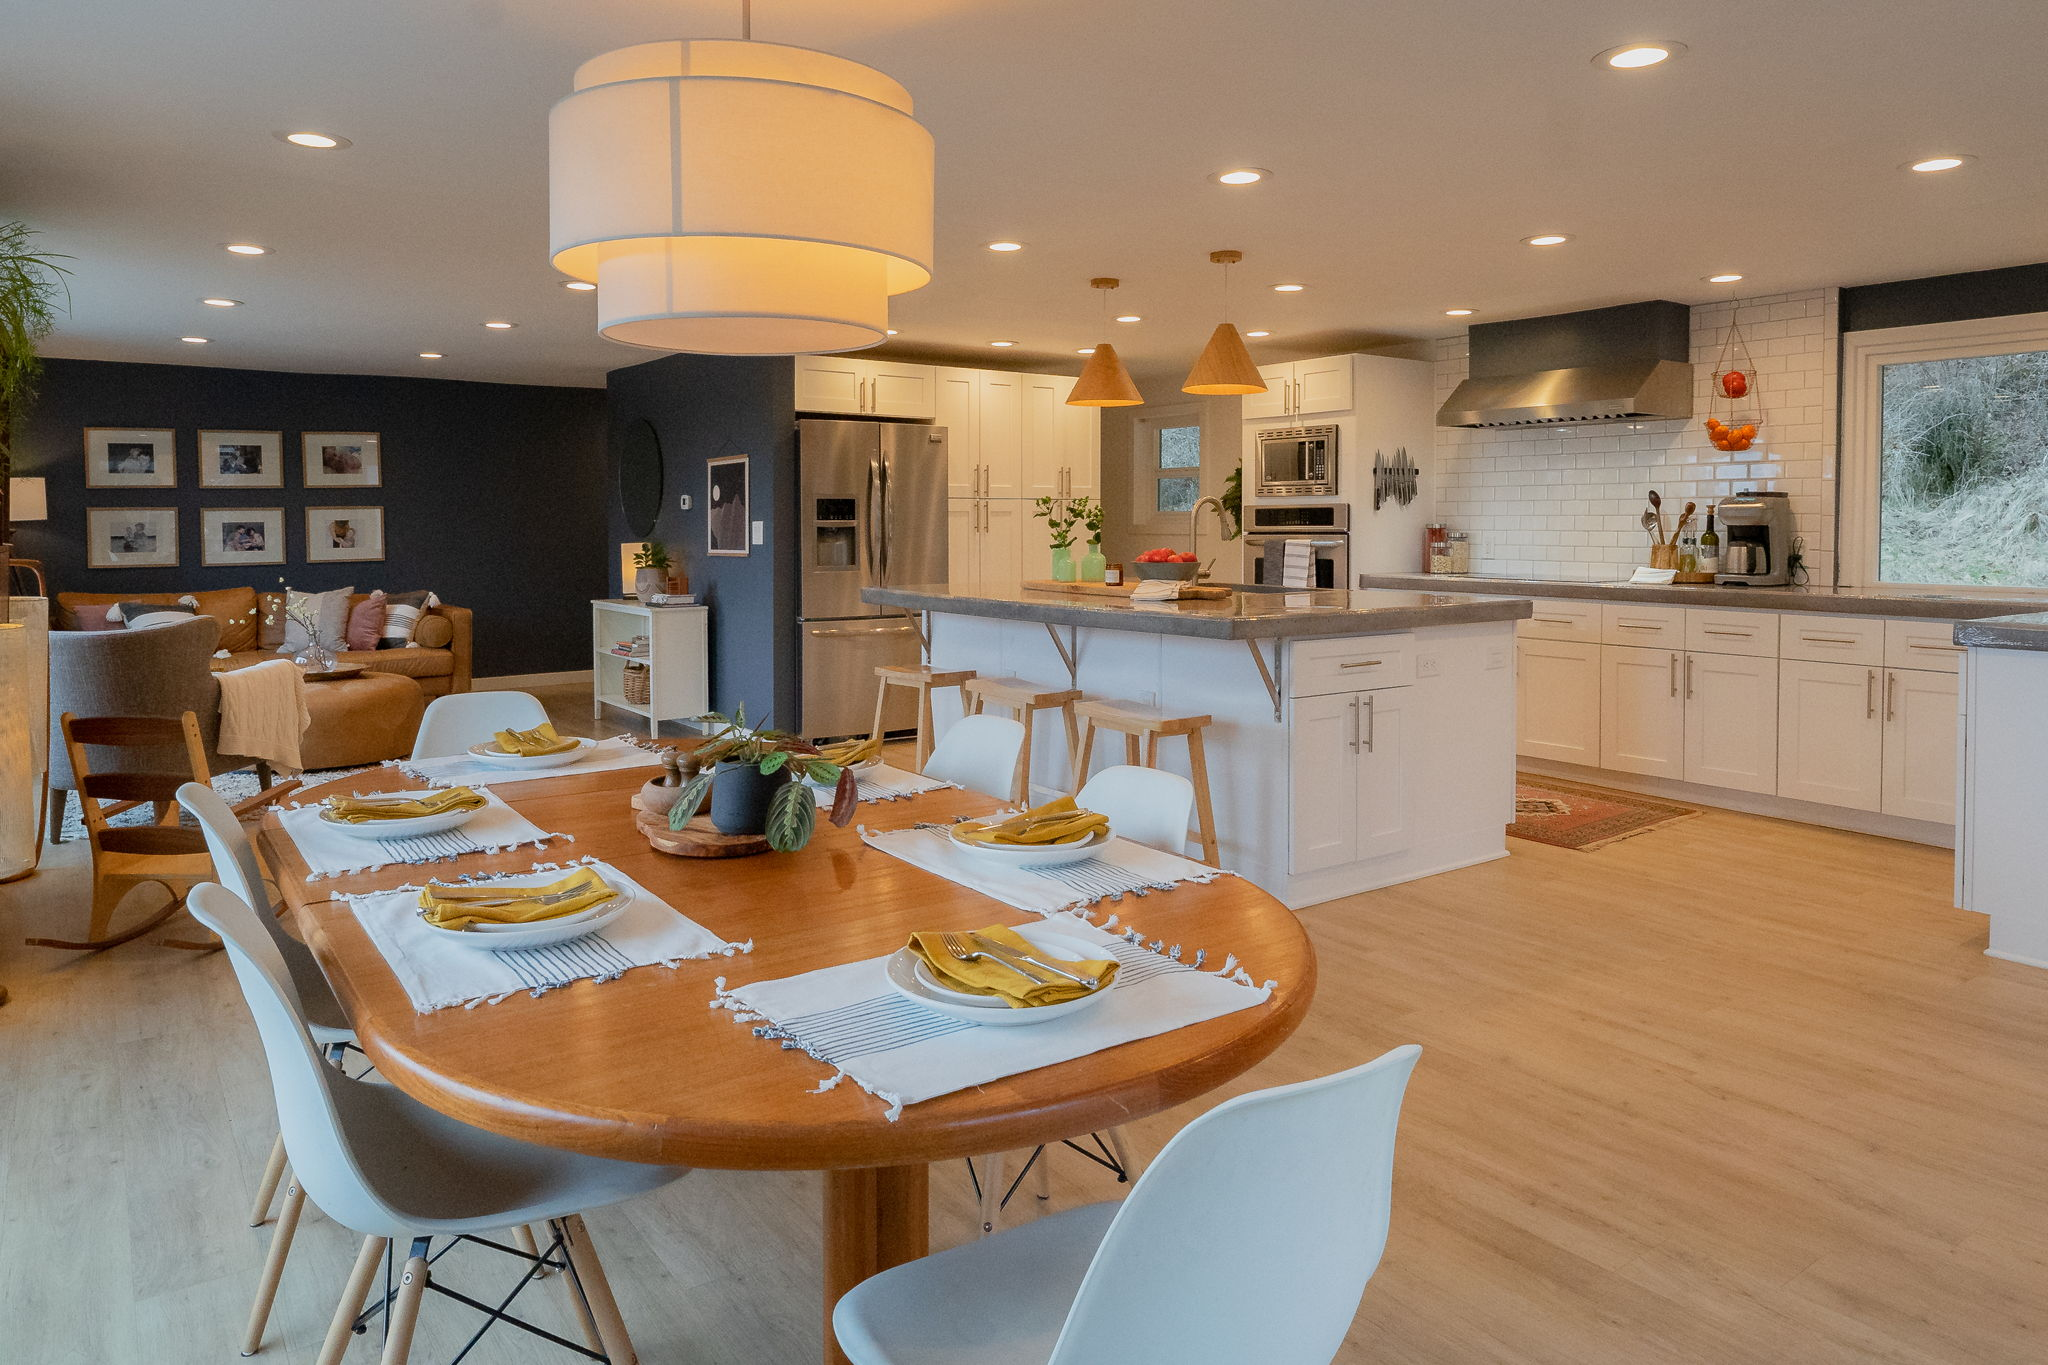 Beautiful new floors and remodeled kitchen